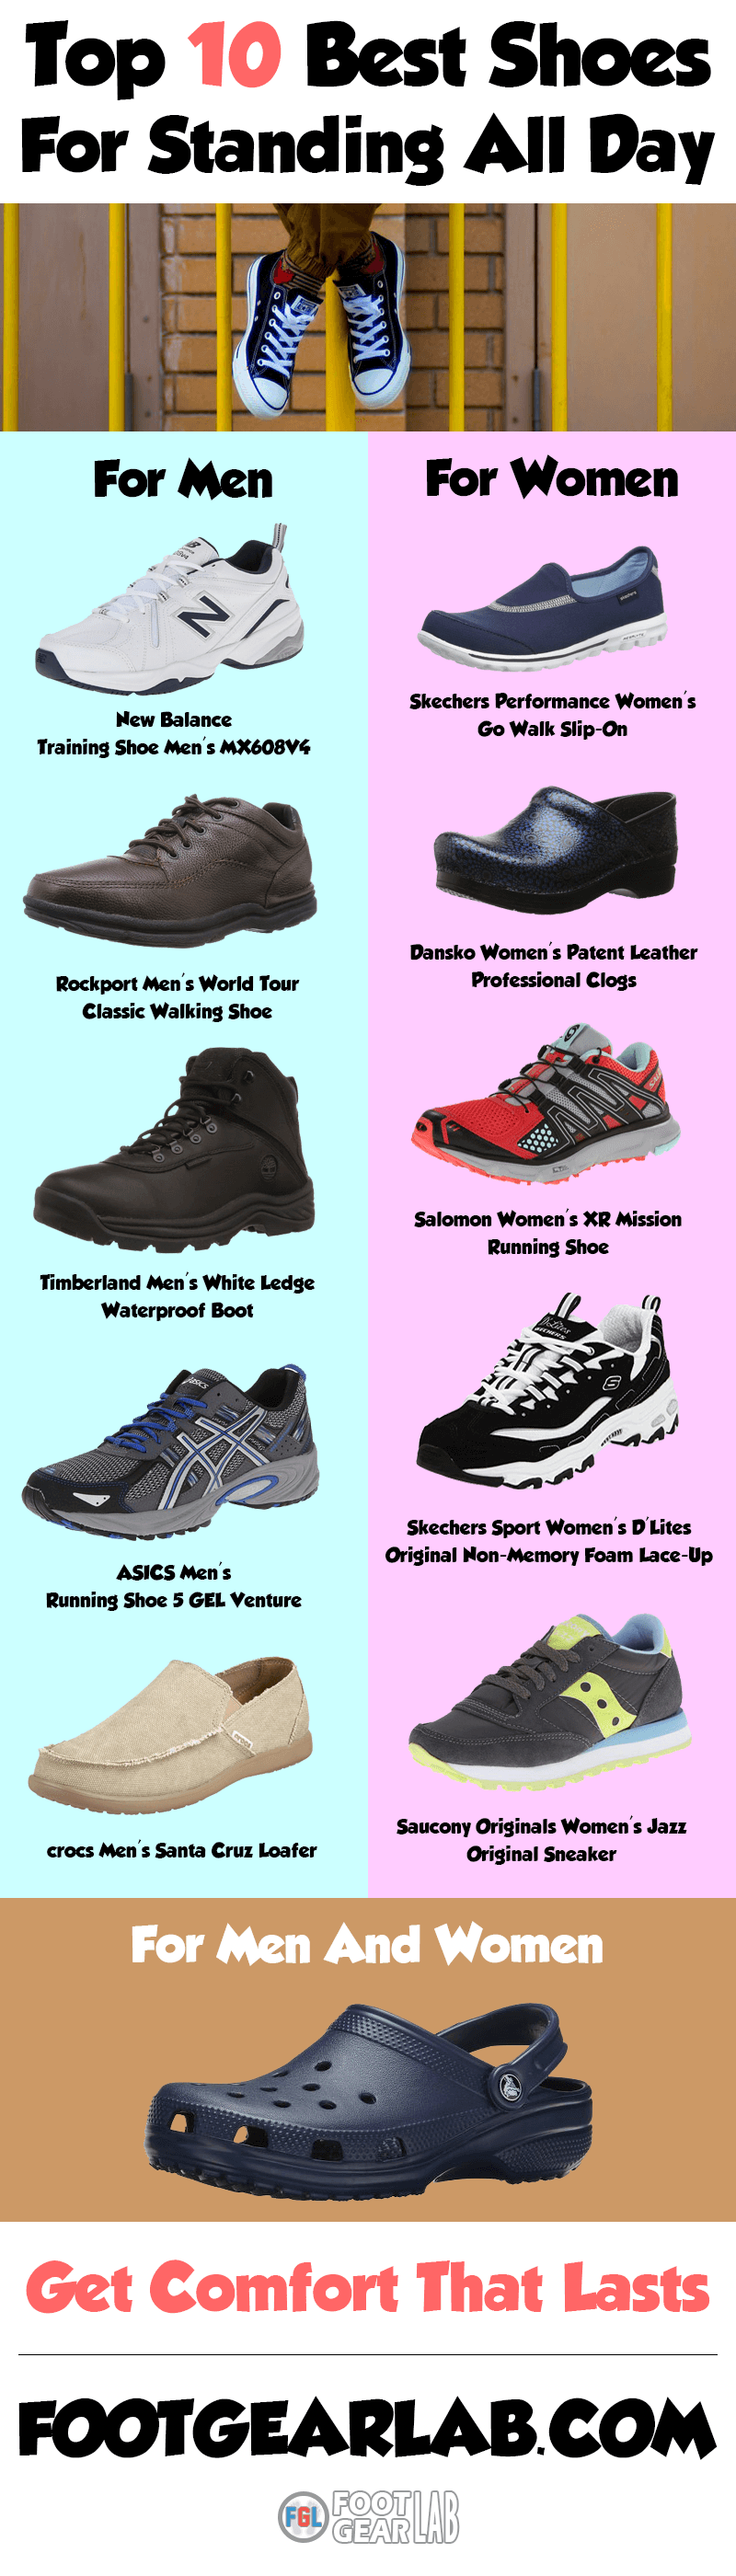 03c8bb2d0d389 Best Shoes For Standing All Day - Get Comfort That Lasts. @footgearlab  #BestShoesForStandingAllDay #ShoesForStandingAllDay #StandingAllDay